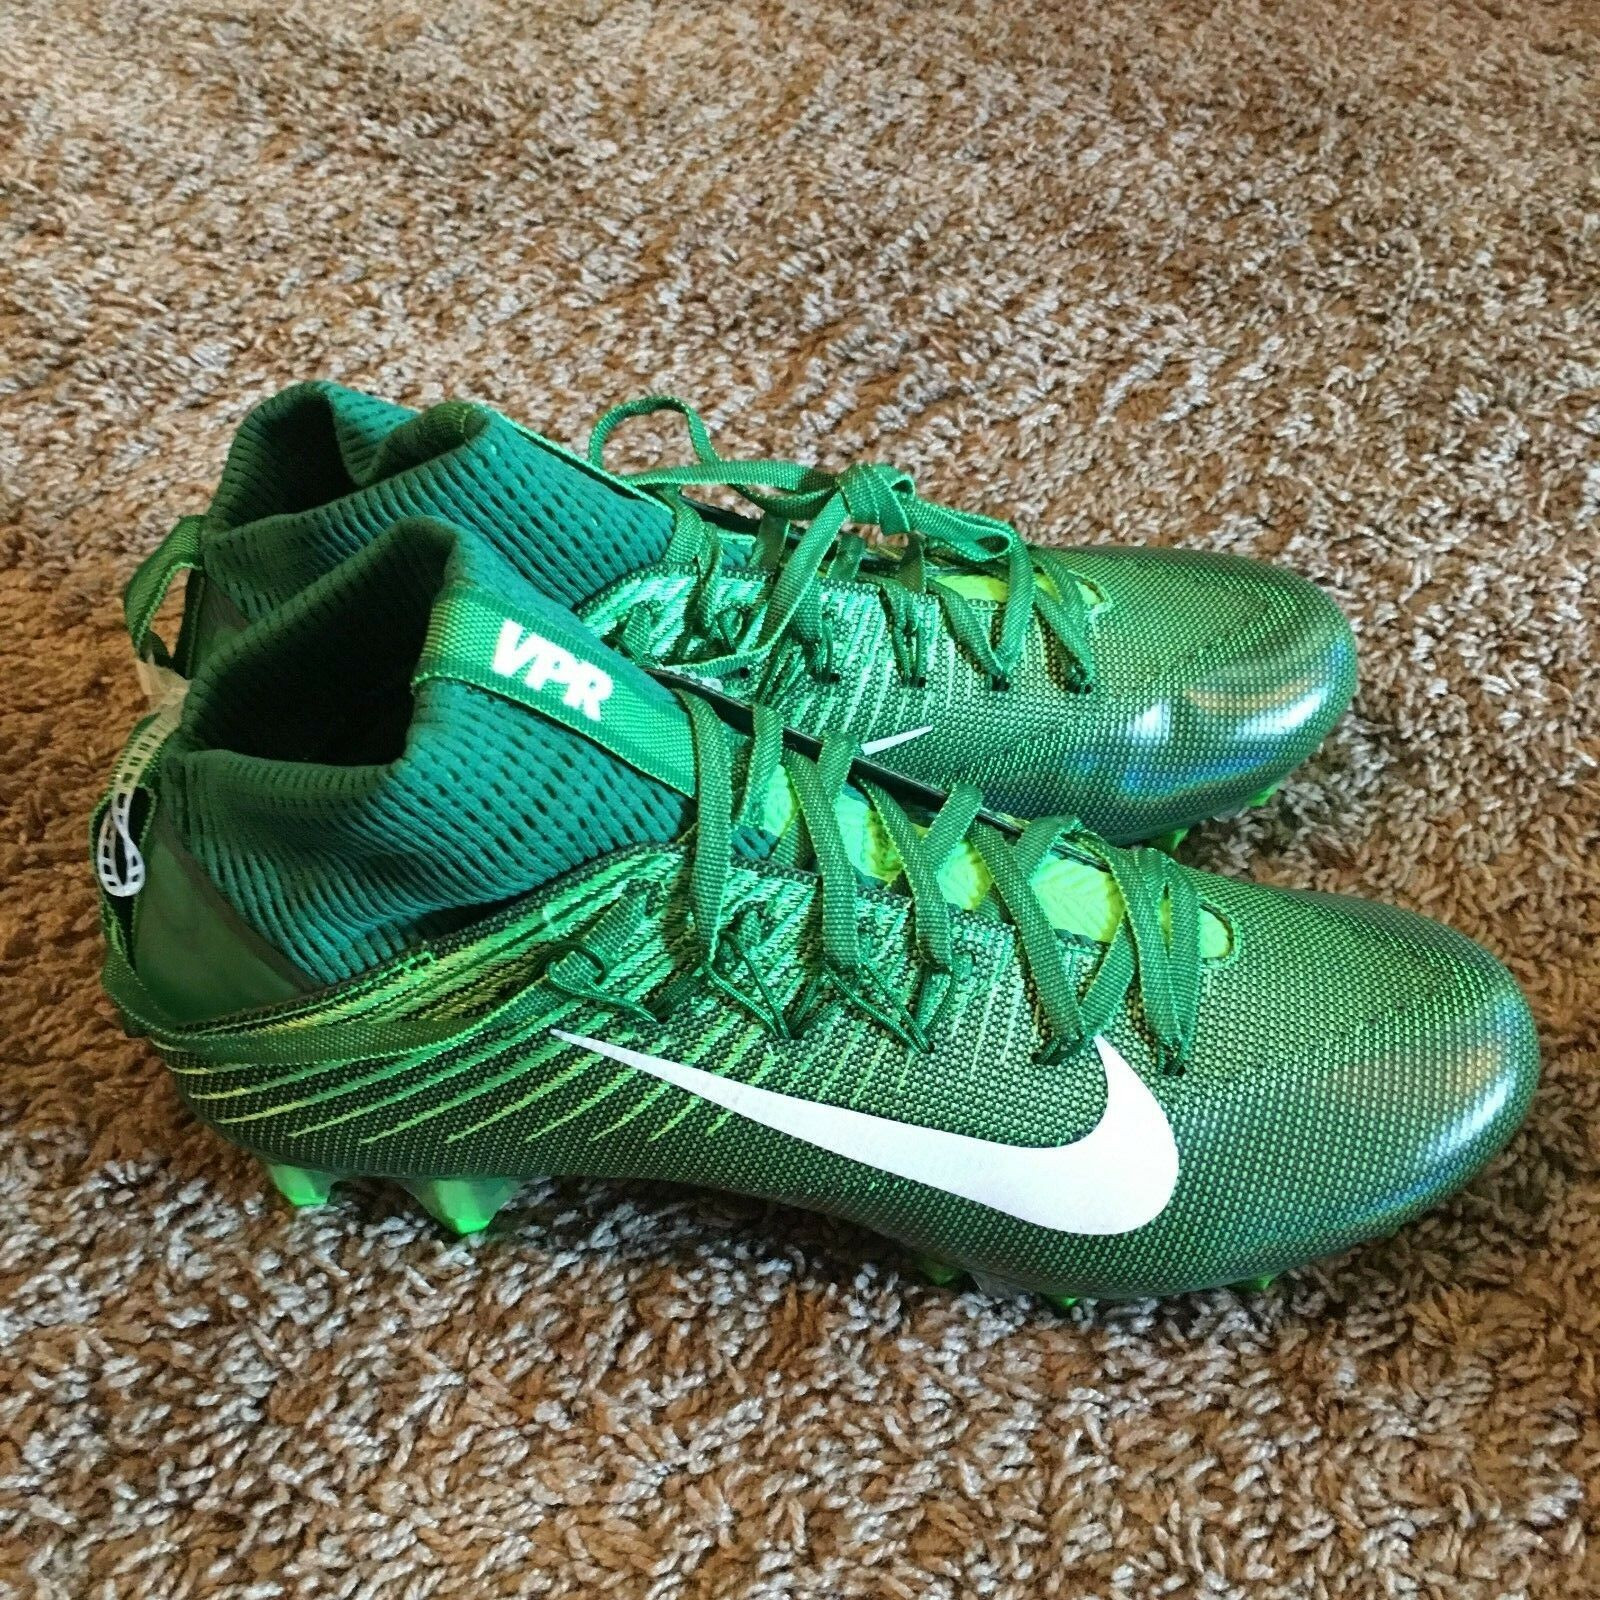 Nike Vapor Untouchable 2 Size 8.5 824470 313 Flyweave Football Cleat Green